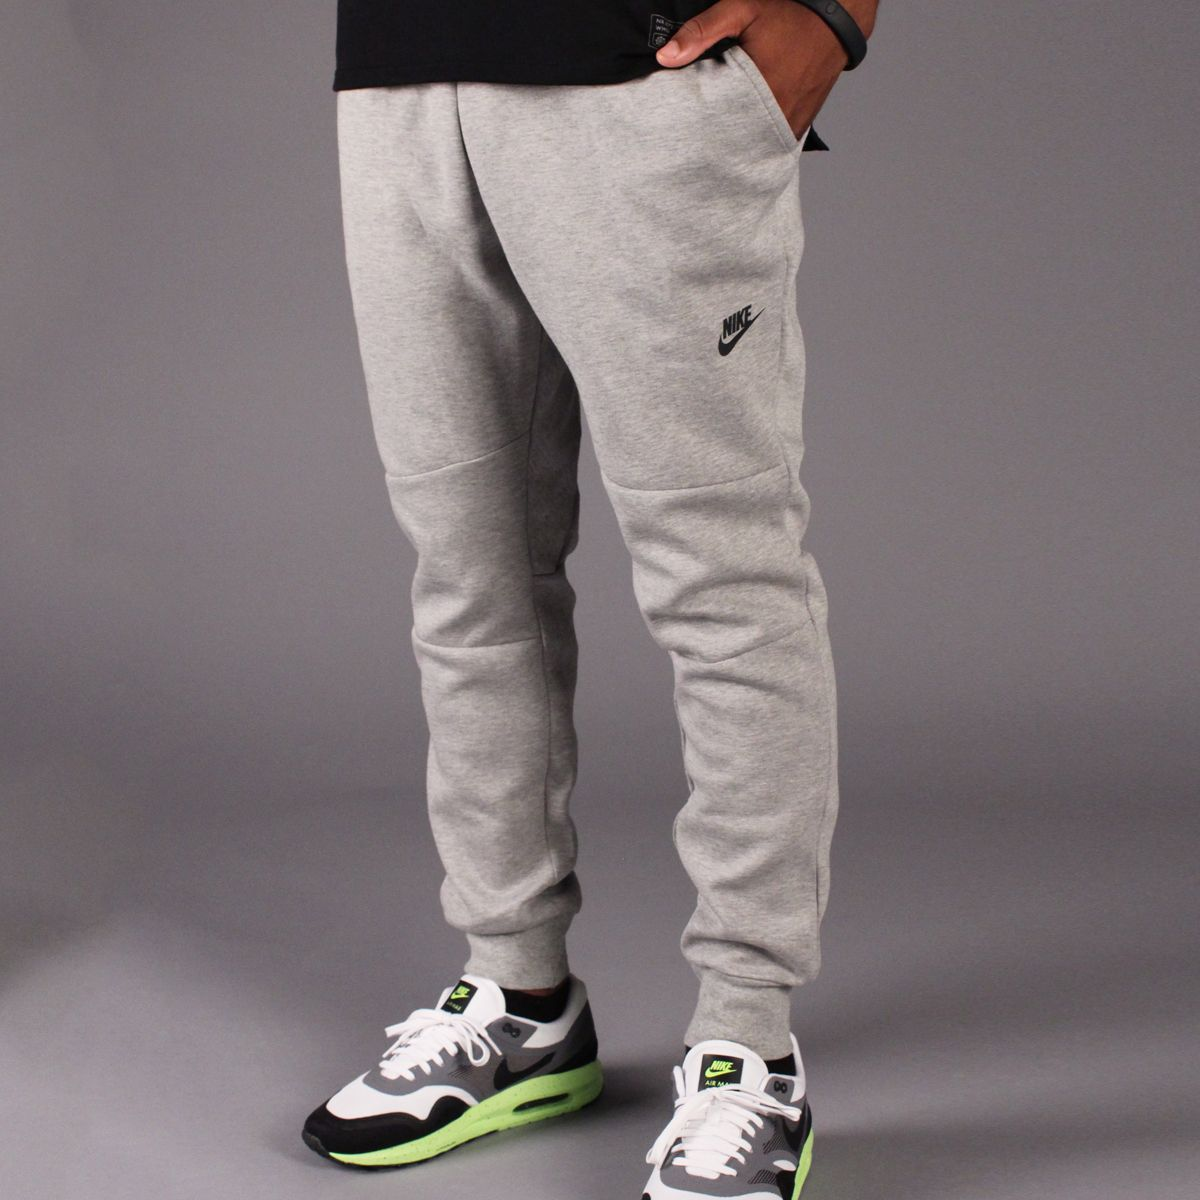 nike tech fleece pant 1mm dark heather grey black style for jason pinterest nike tech. Black Bedroom Furniture Sets. Home Design Ideas